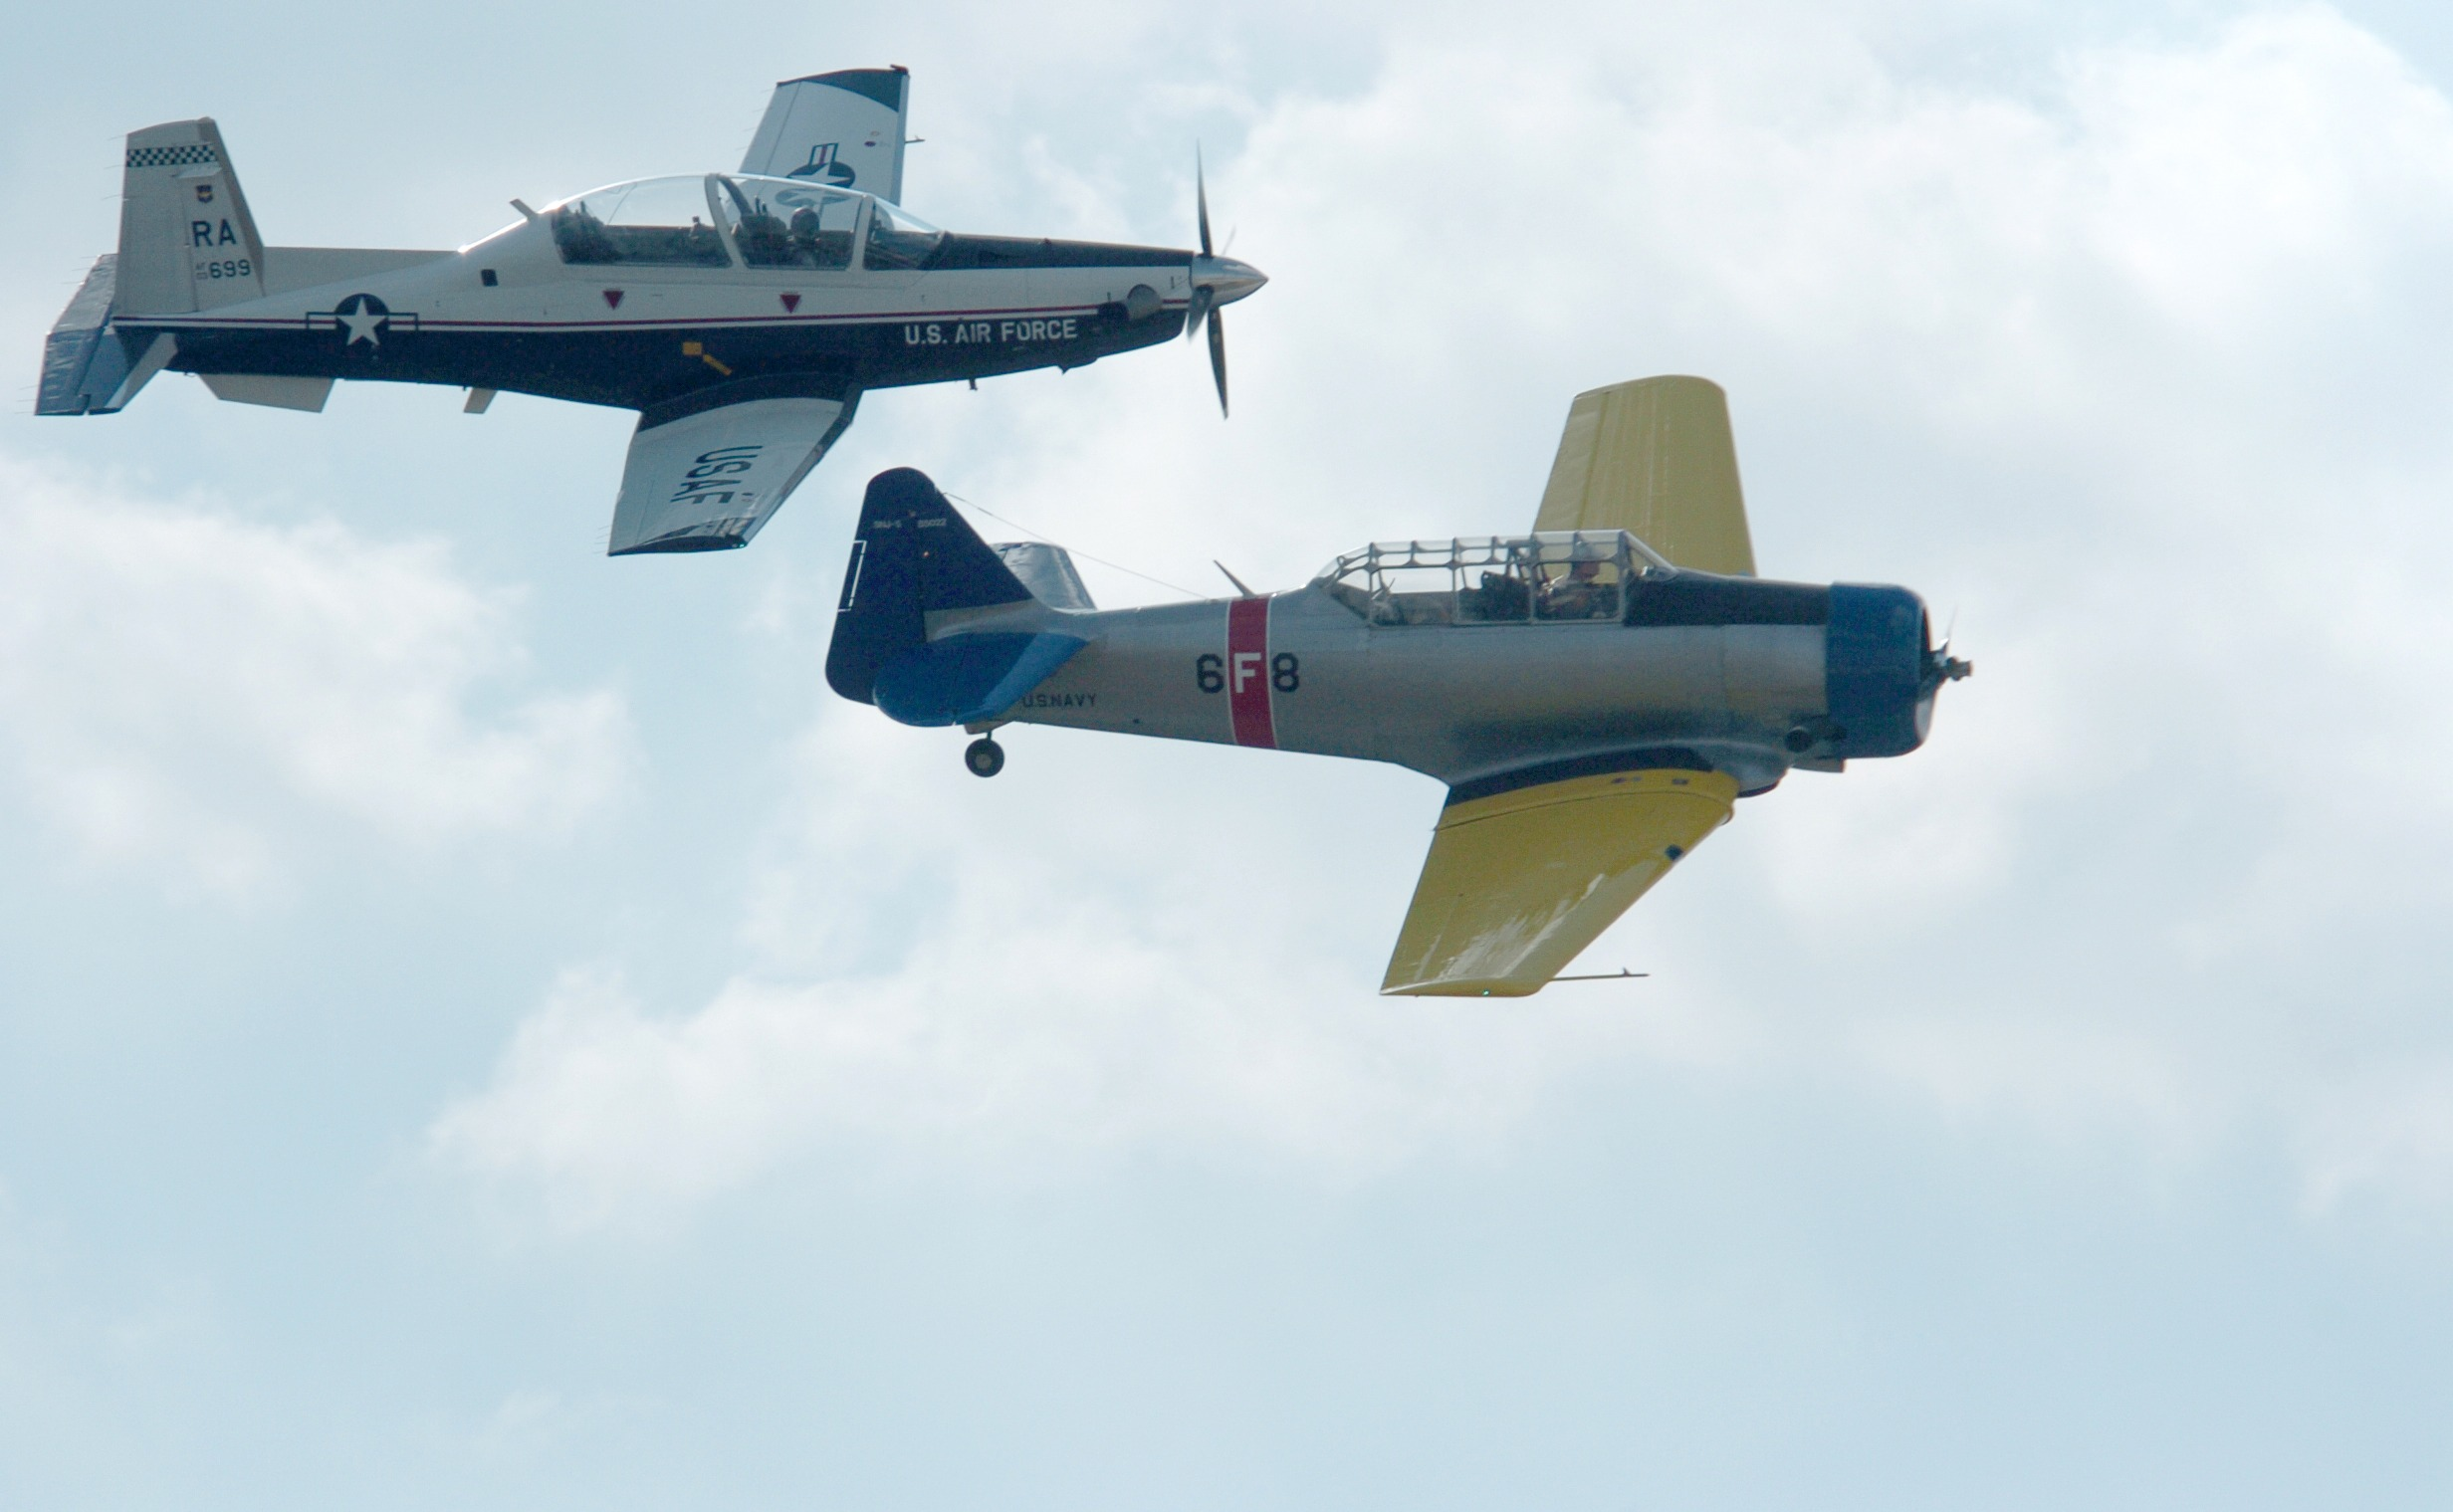 T-6s_-_a_Texan_II_and_a_Texan_too_edited.jpg